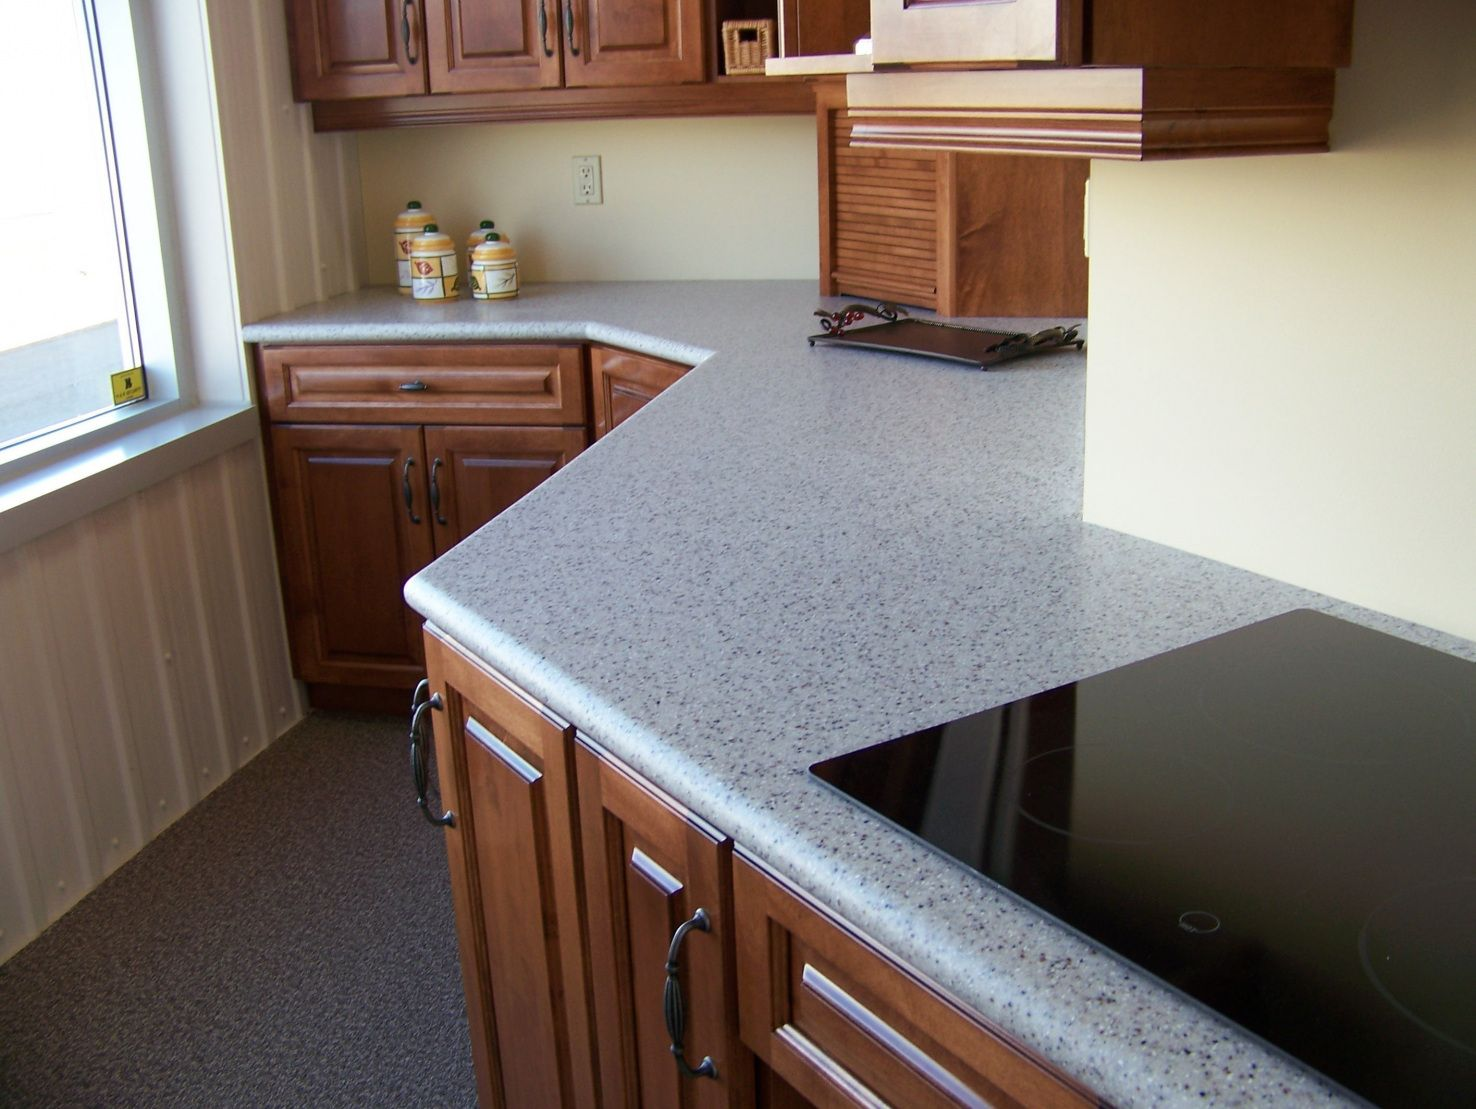 Merveilleux 50+ Granite Sheet Countertops   Remodeling Ideas For Kitchens Check More At  Http:/